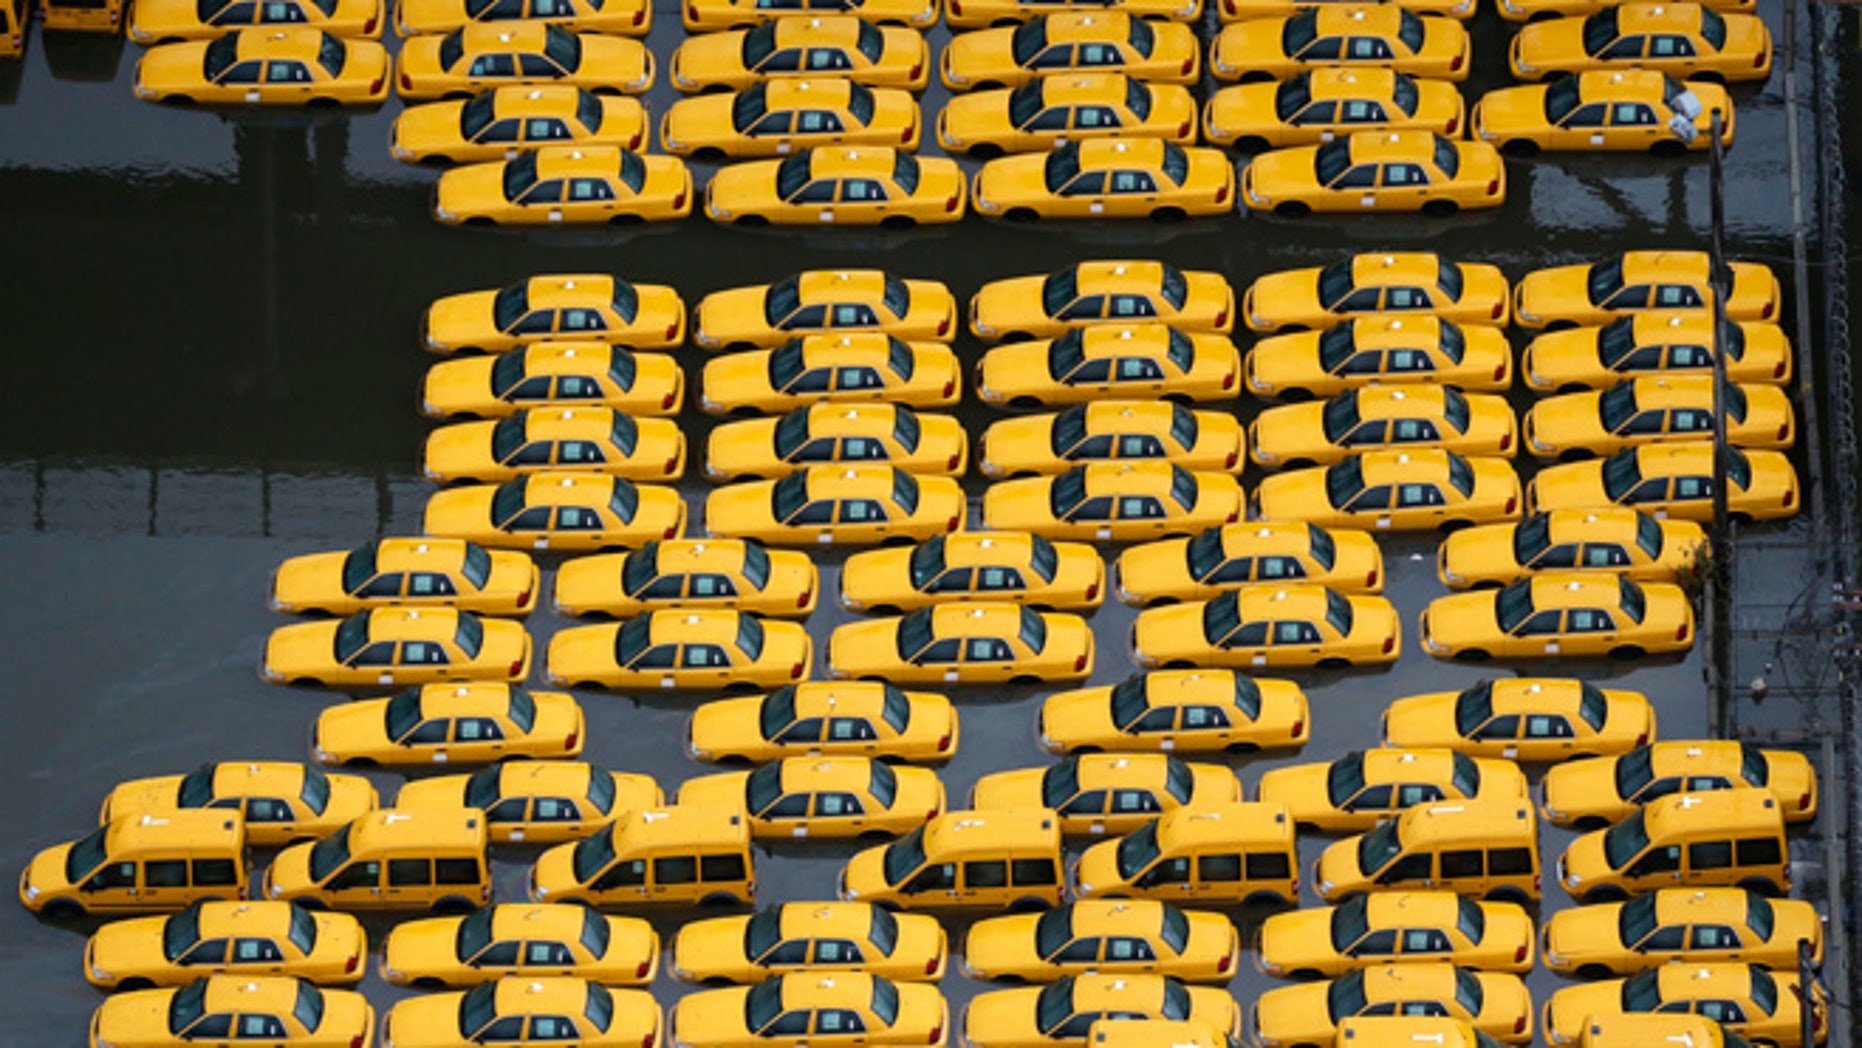 Flood damaged taxis in Weehawken, NJ, are among the thousands of cars that will need to be repaired or replaced in the coming weeks in the aftermath of superstorm Sandy.